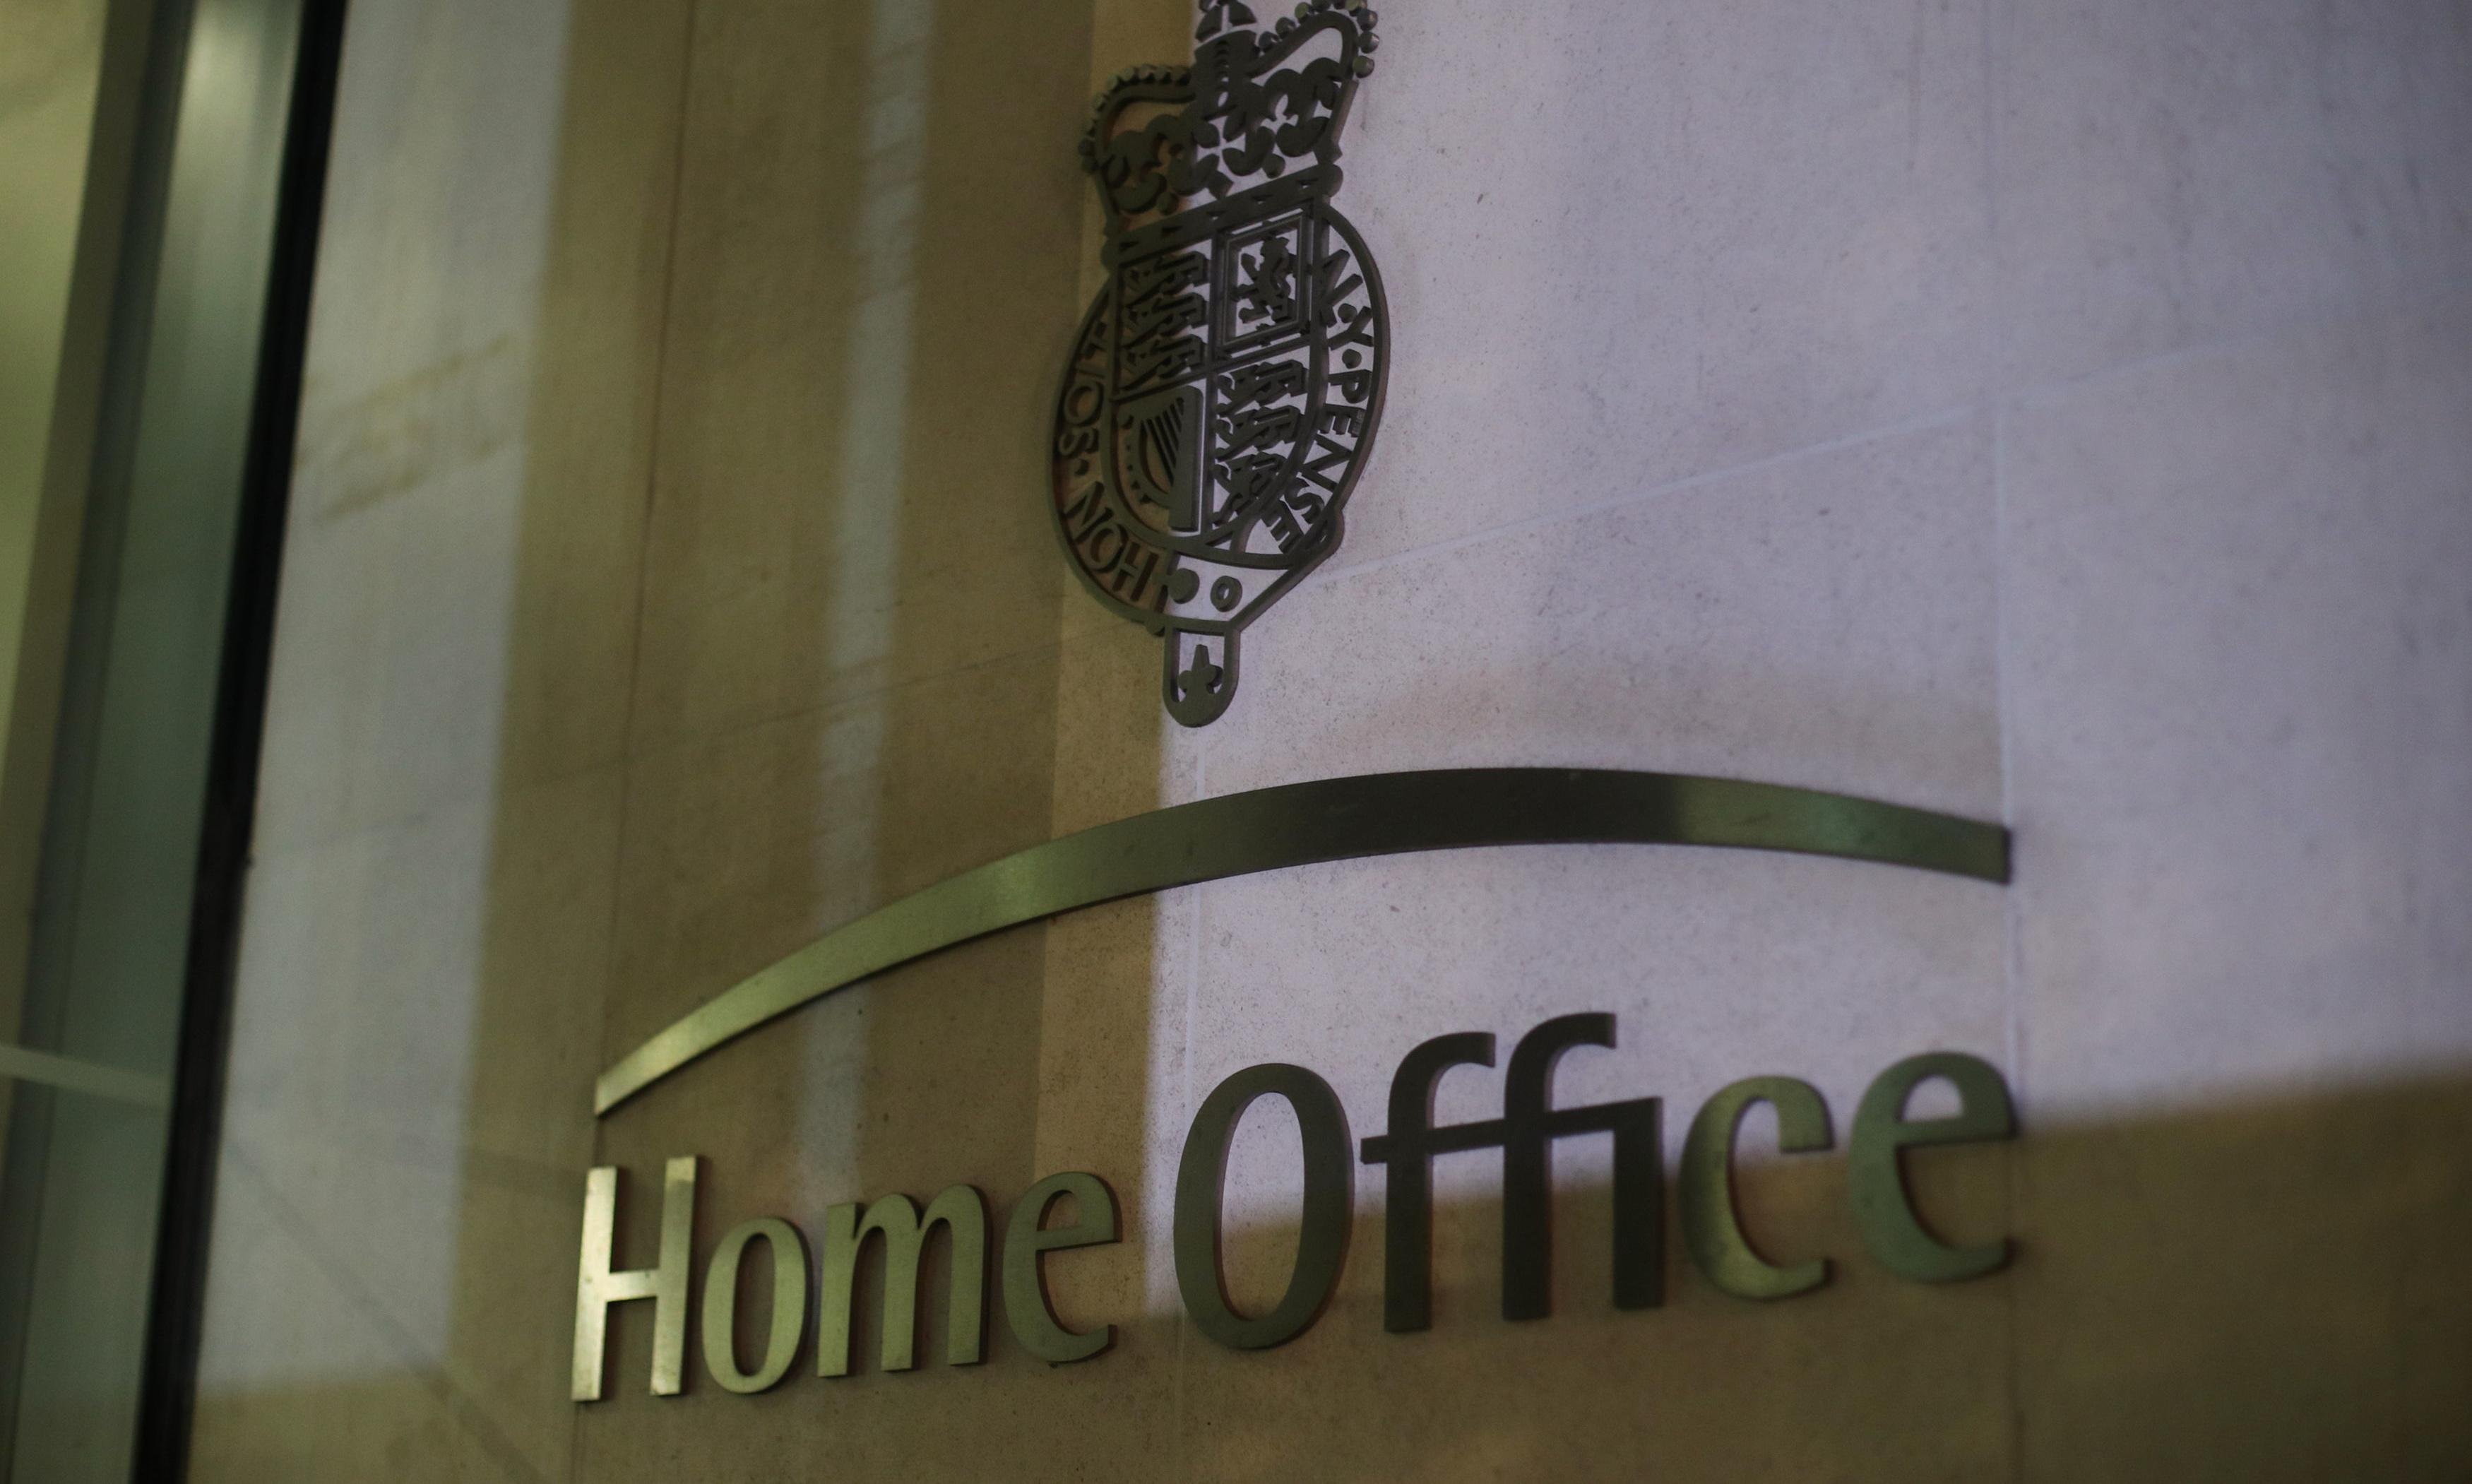 Home Office held 'illegal interview' with asylum seeker